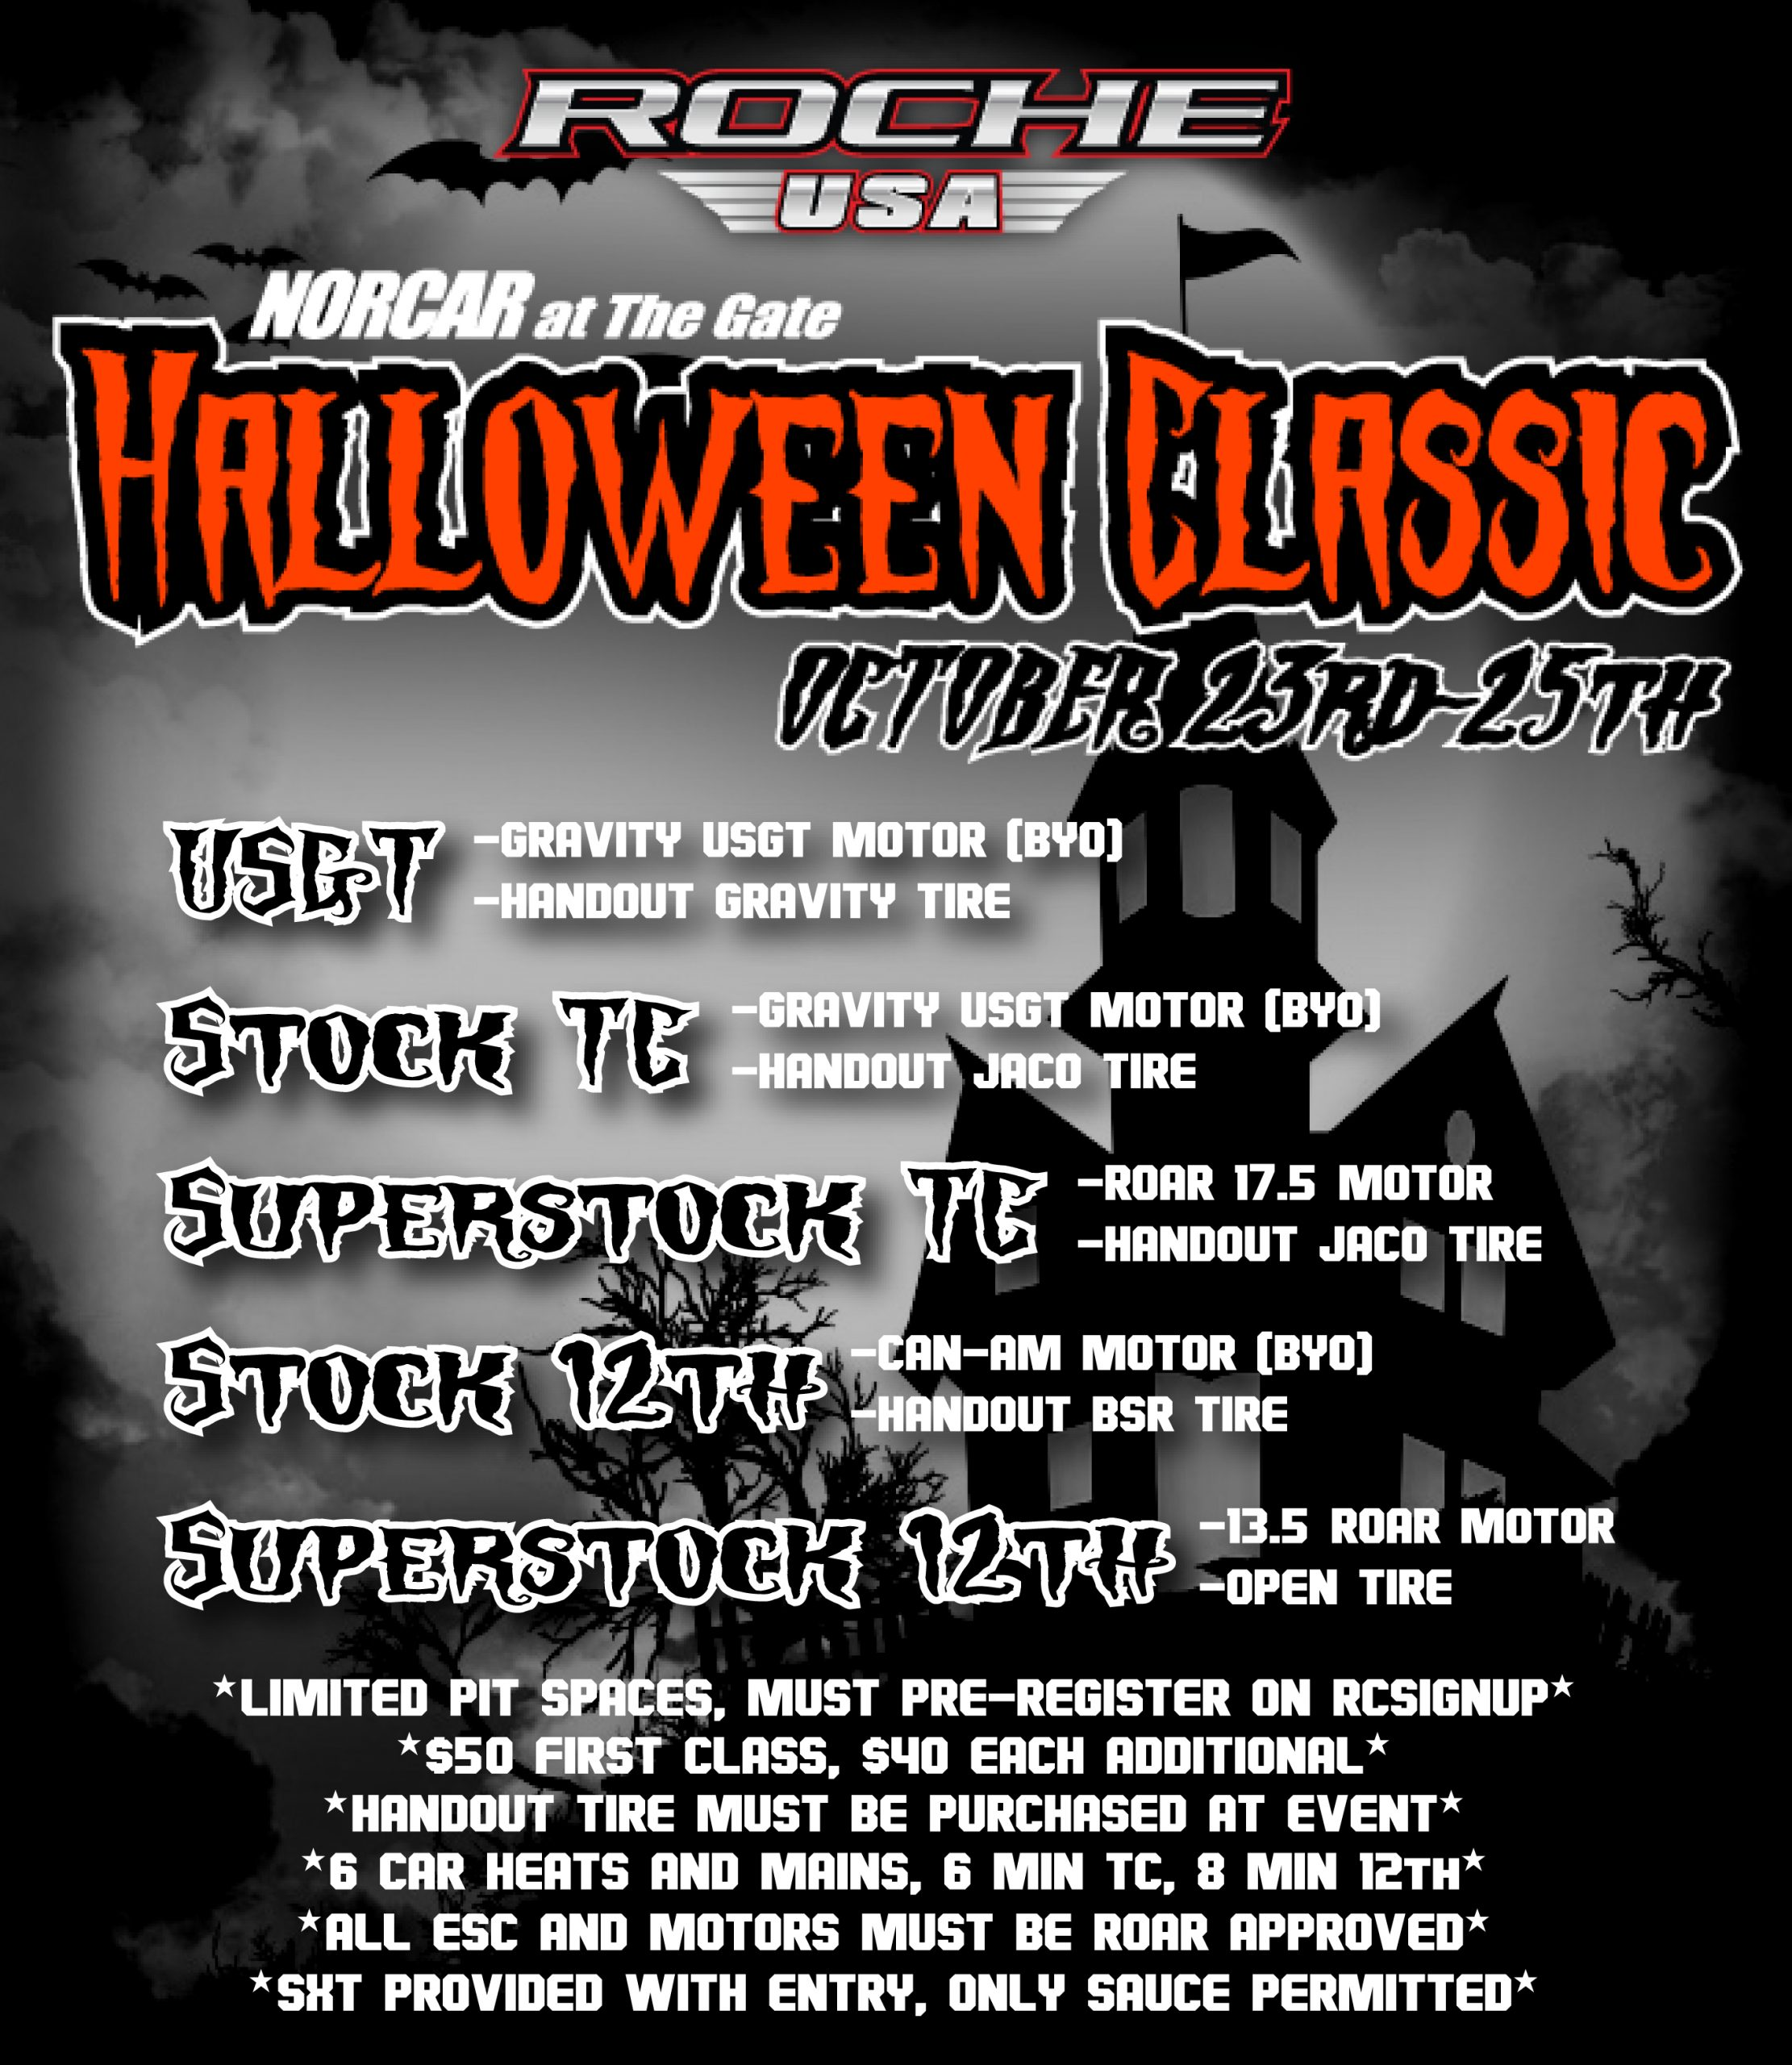 2020 Halloween Classic At The Gate NORCAR Racing – R/C Racing at The Gate